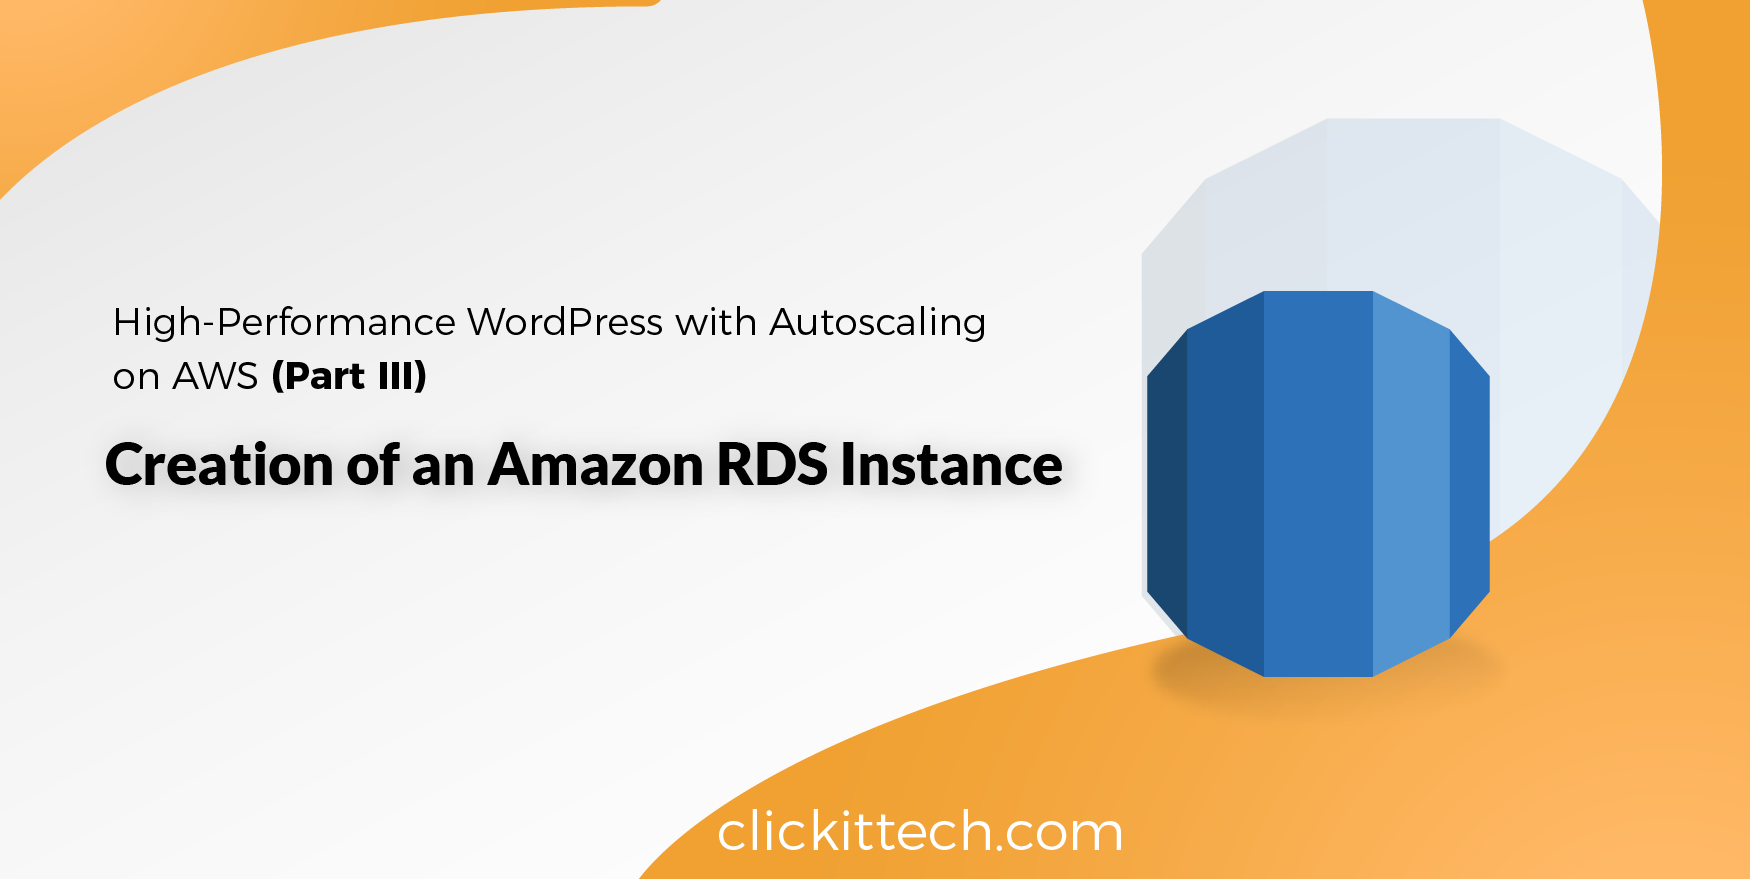 Amazon RDS Instance